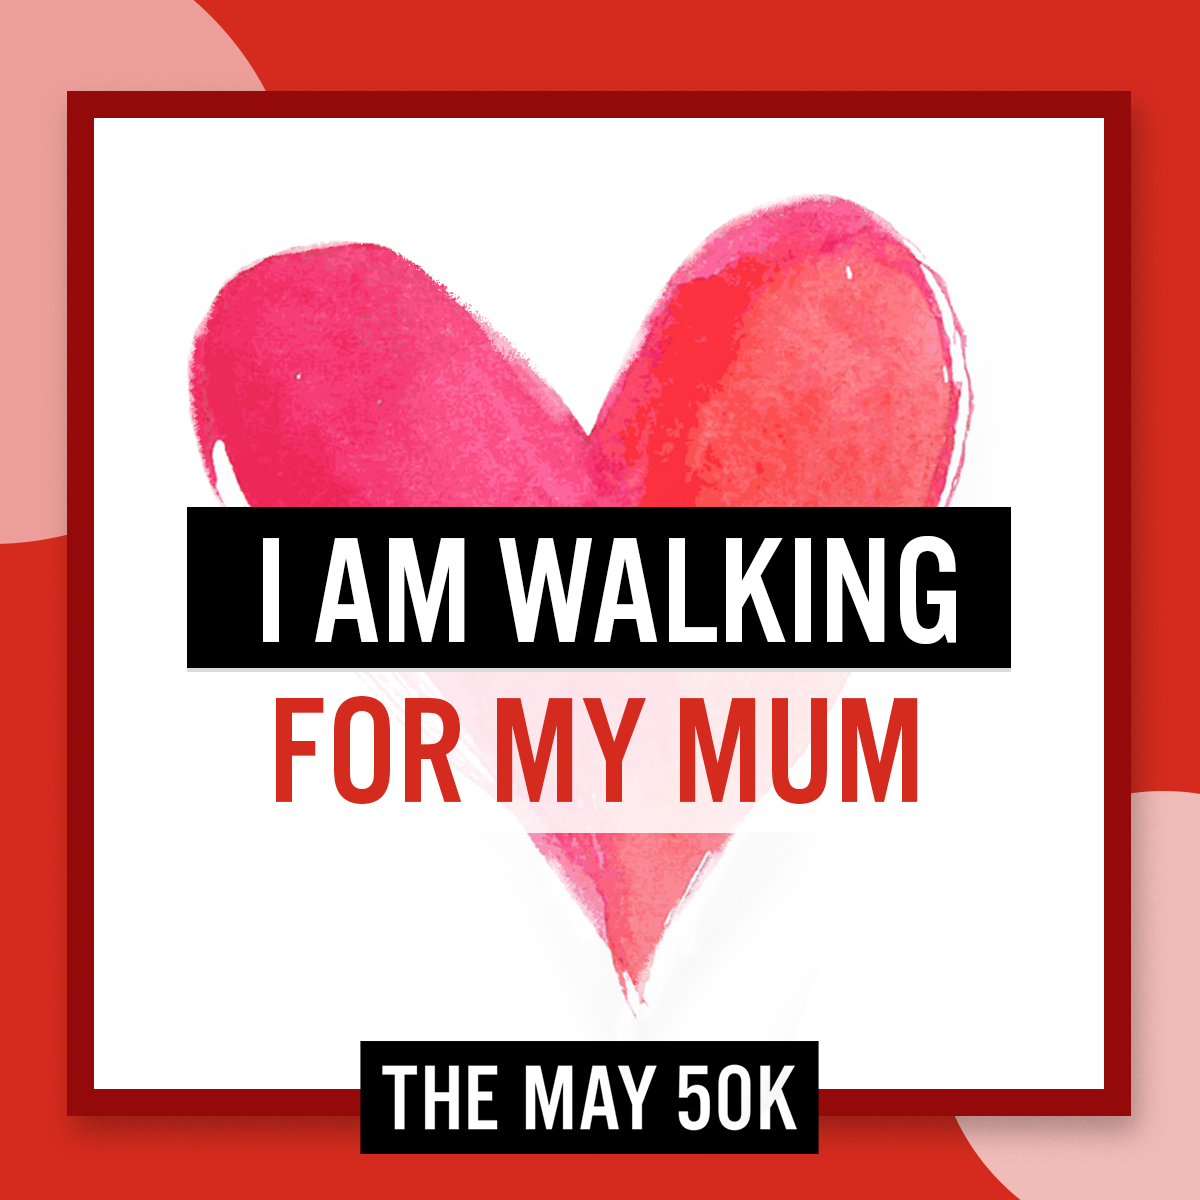 Walk For Mum